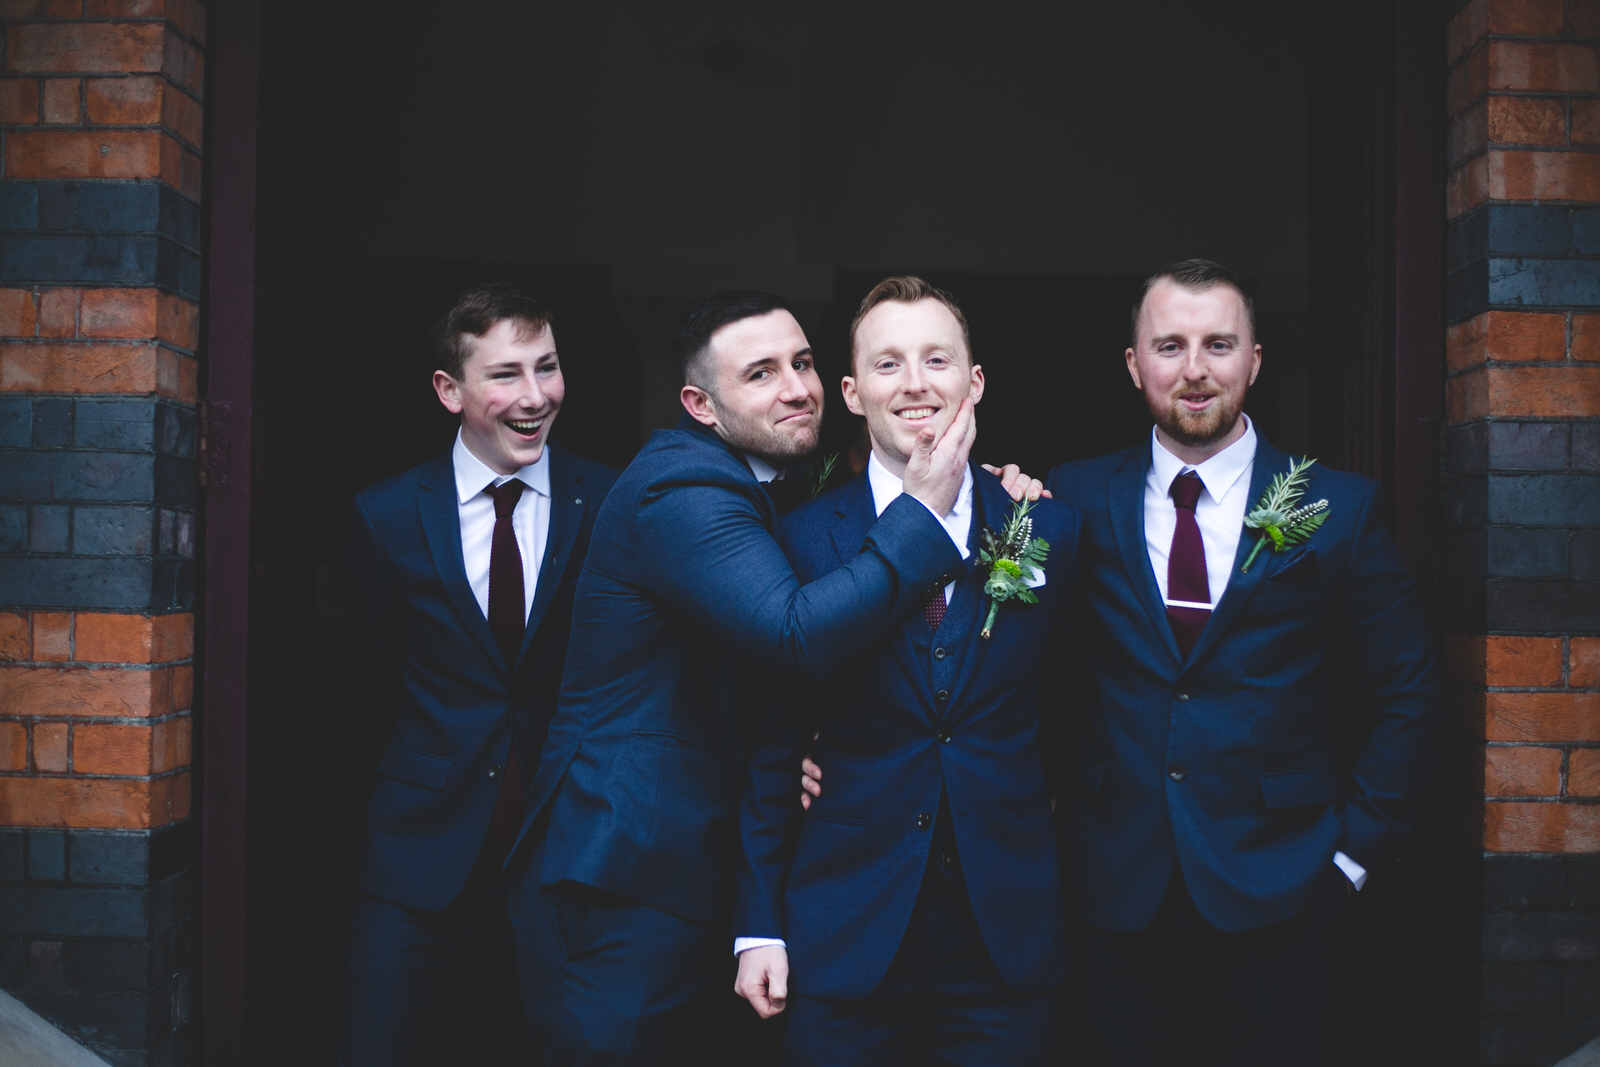 Groom and groomsmen portraits at the University Church on St Stephen's Green